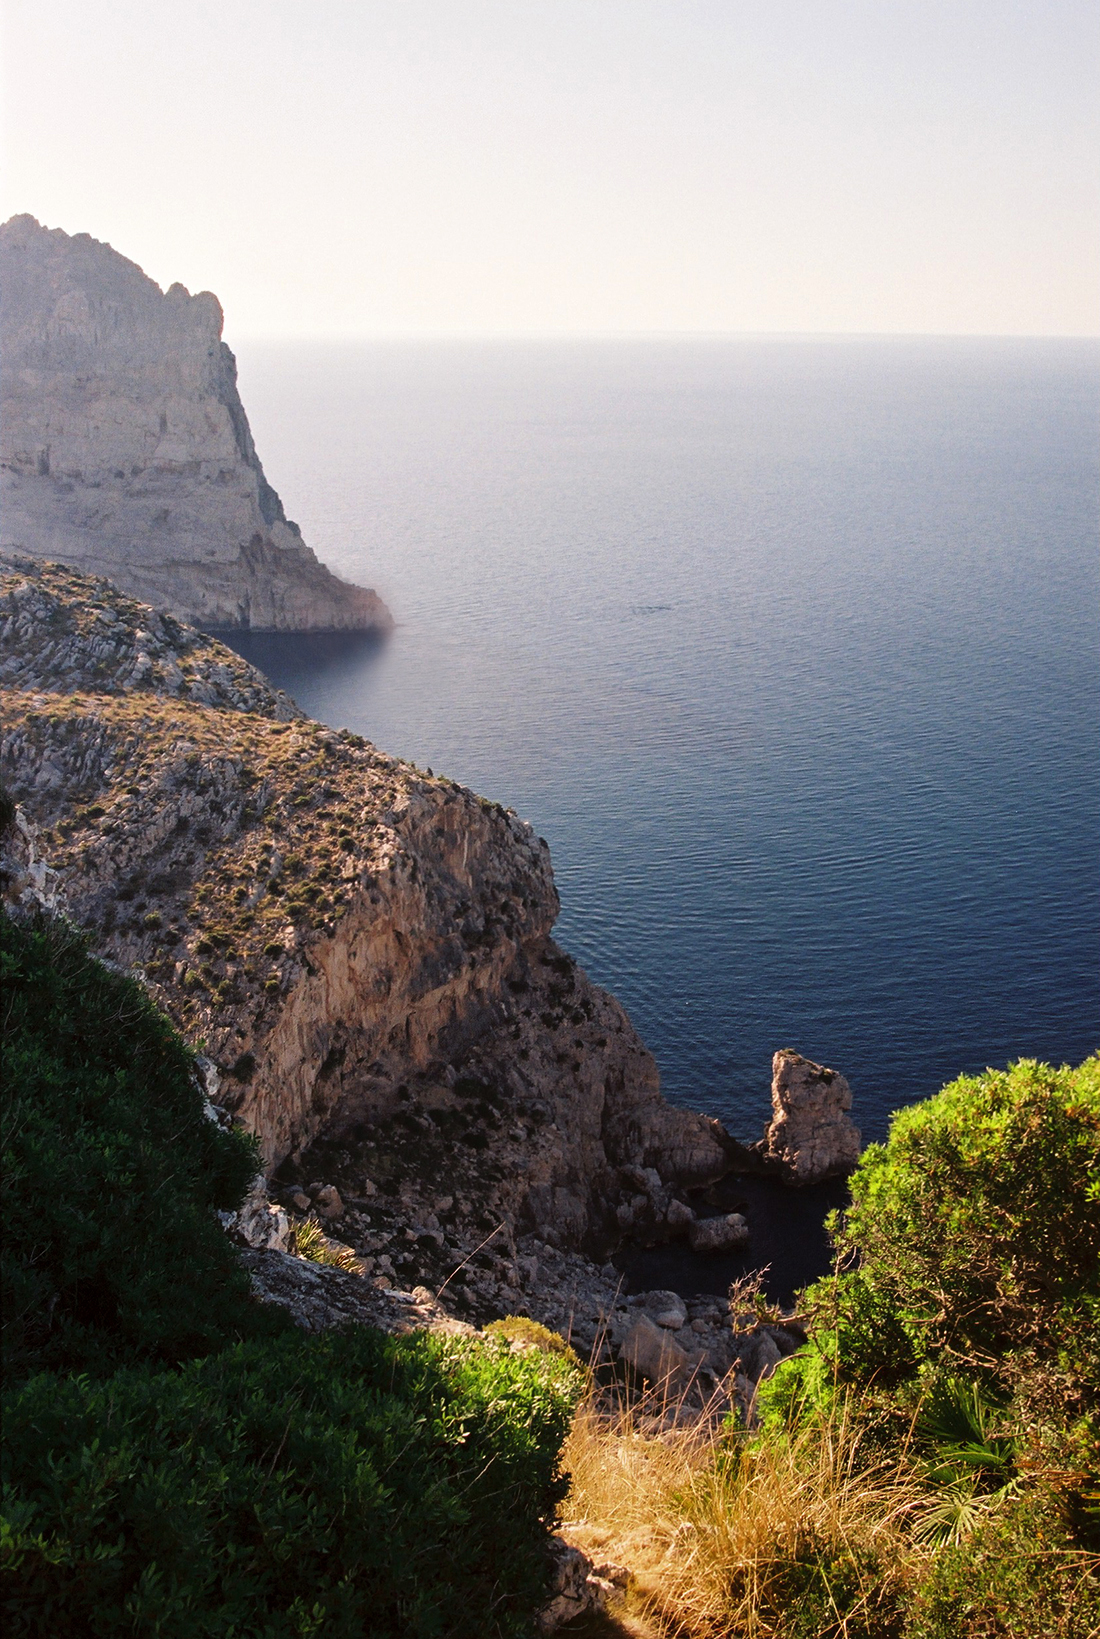 Formentor in the Serra de Tramuntana mountain range on the island of Mallorca overlooking the Mediterranean Sea